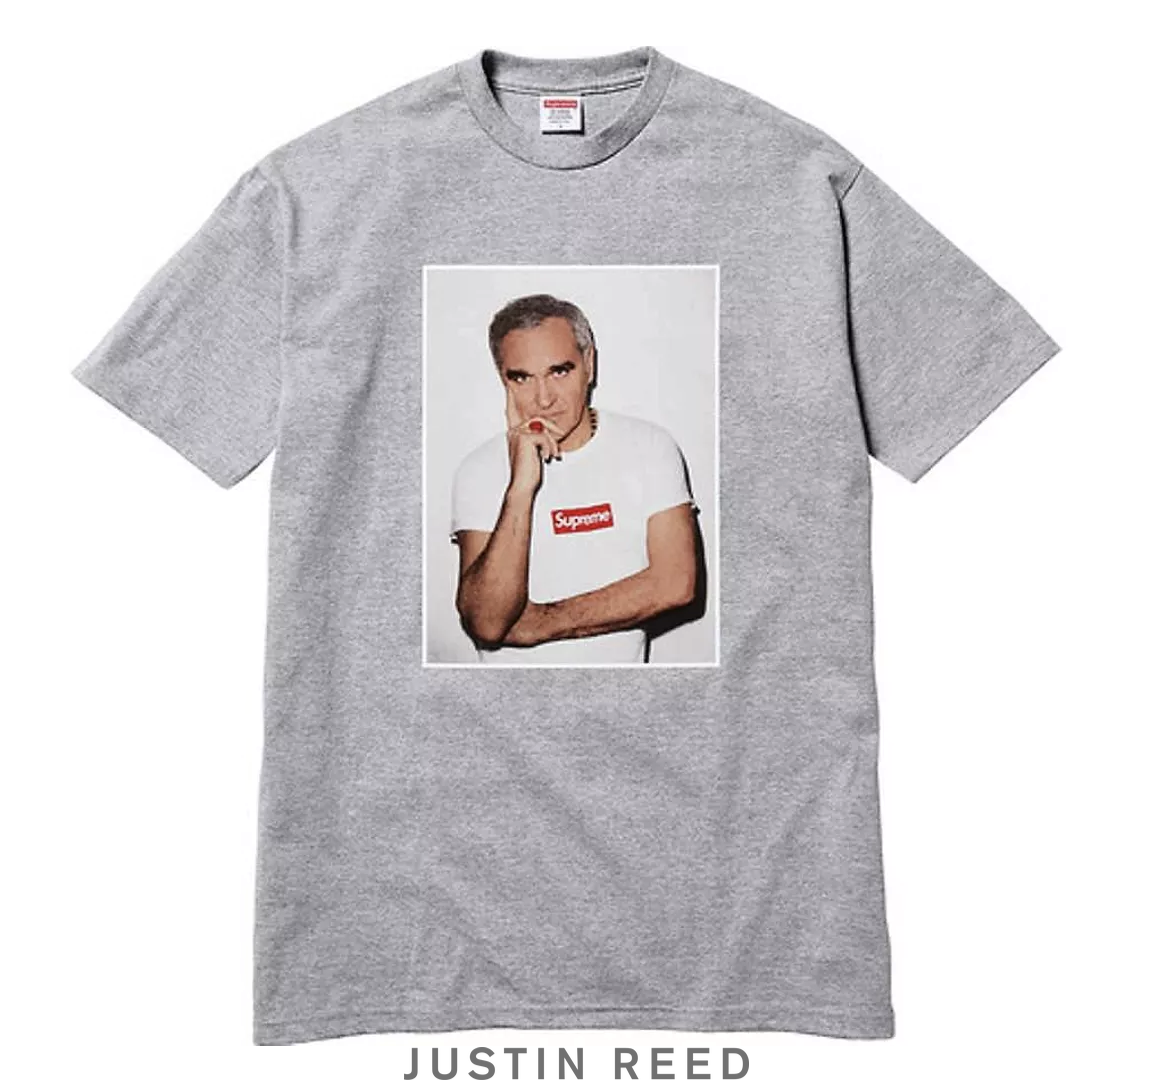 Details about Supreme SS16 Morrissey T.